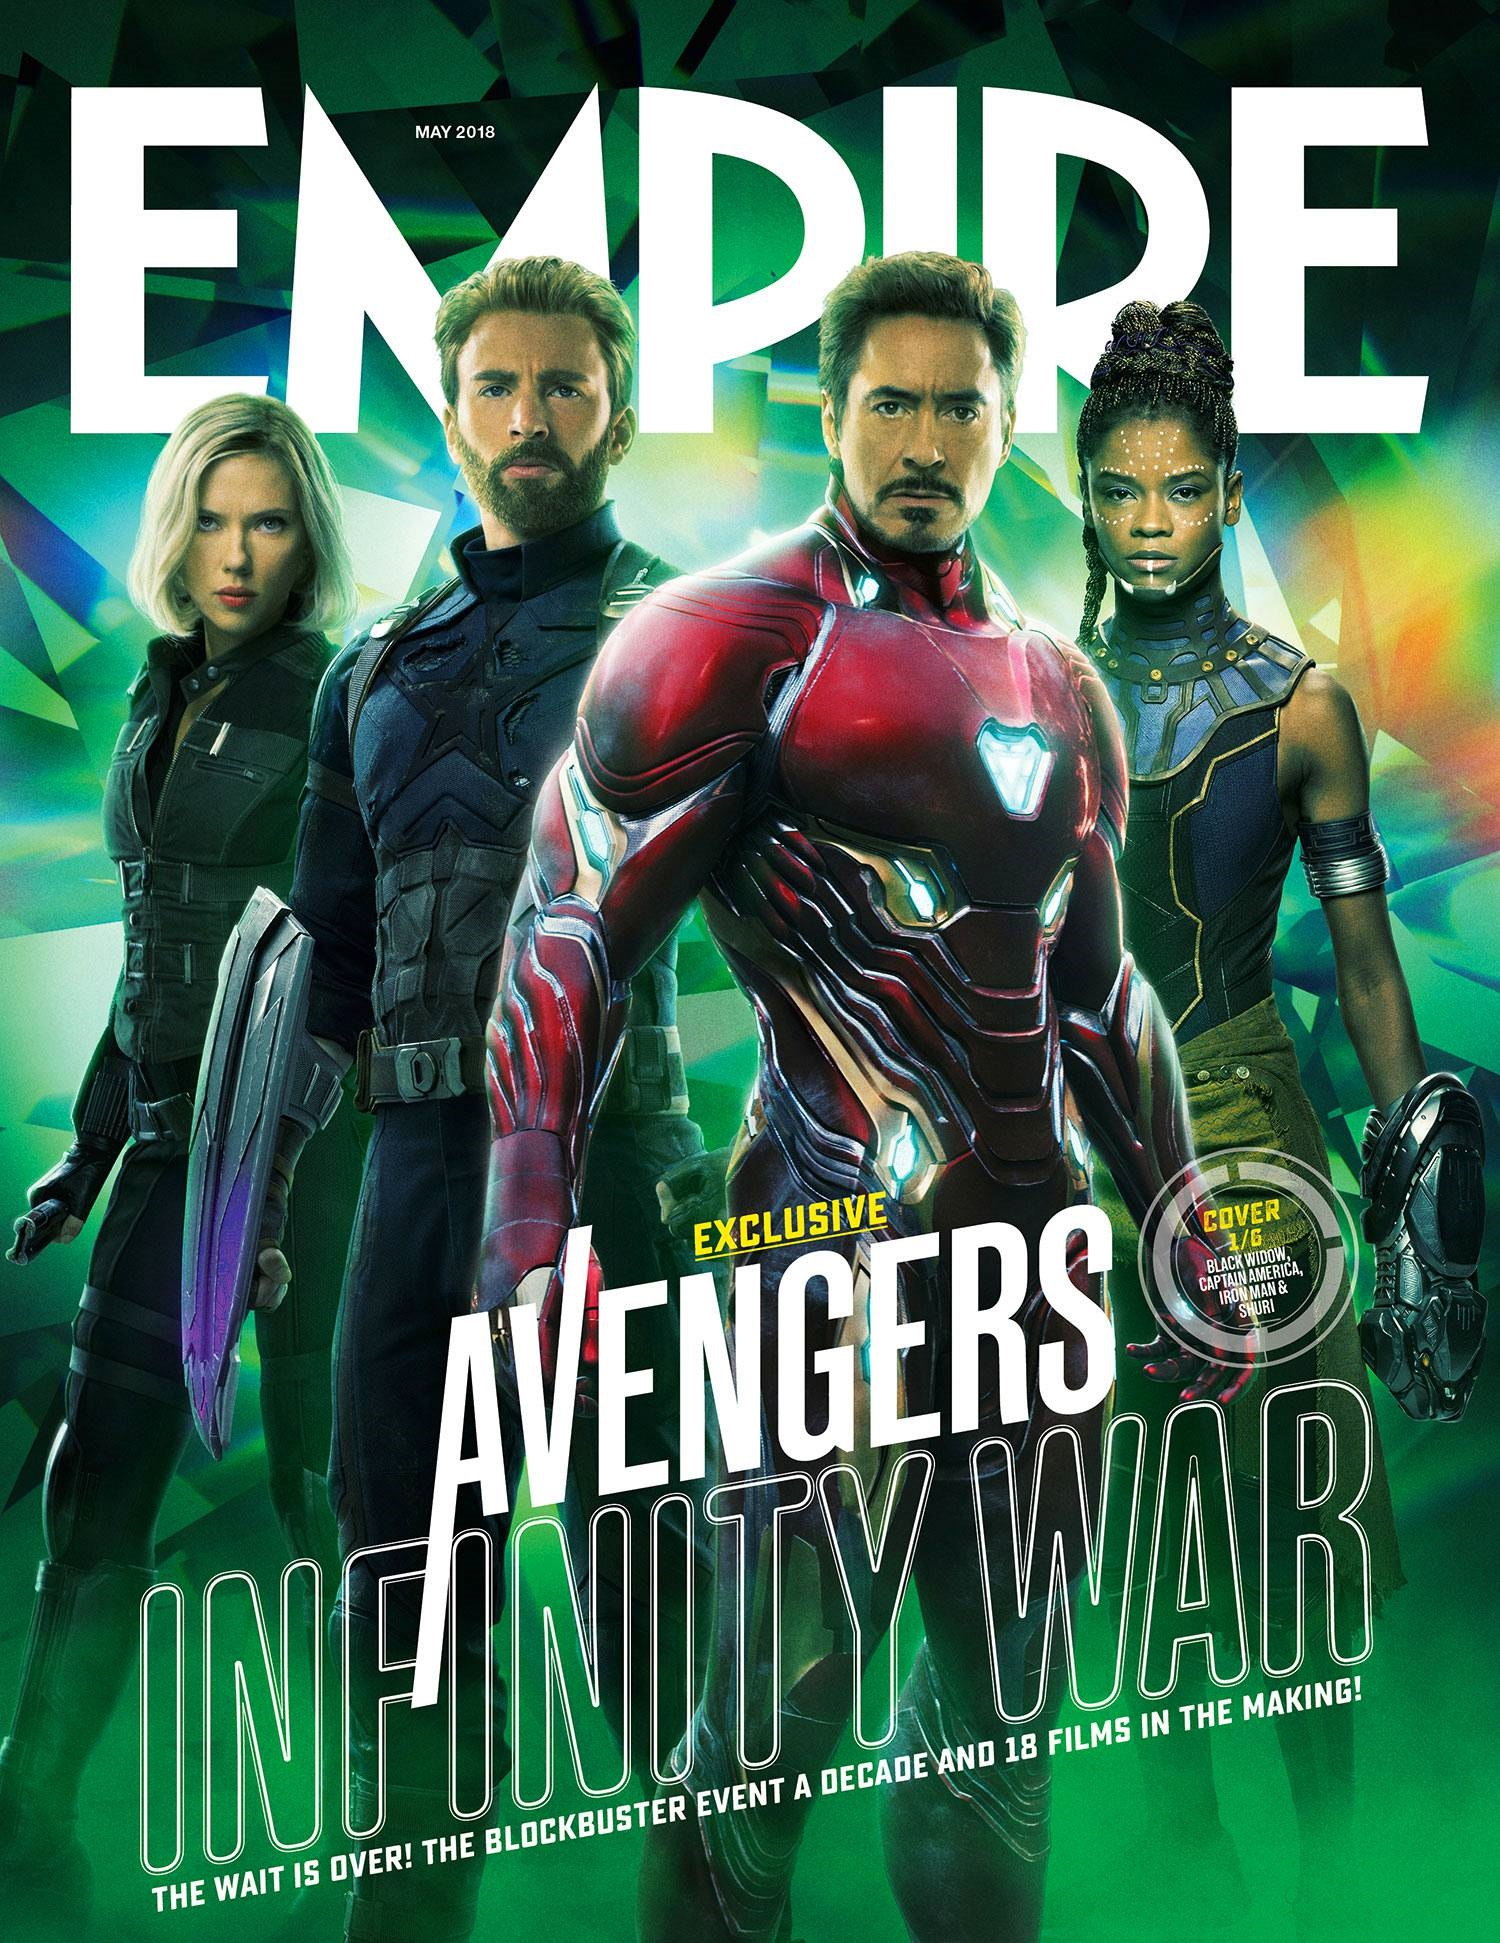 Cover featuring Iron Man, Captain America, Black Widow and Shuri